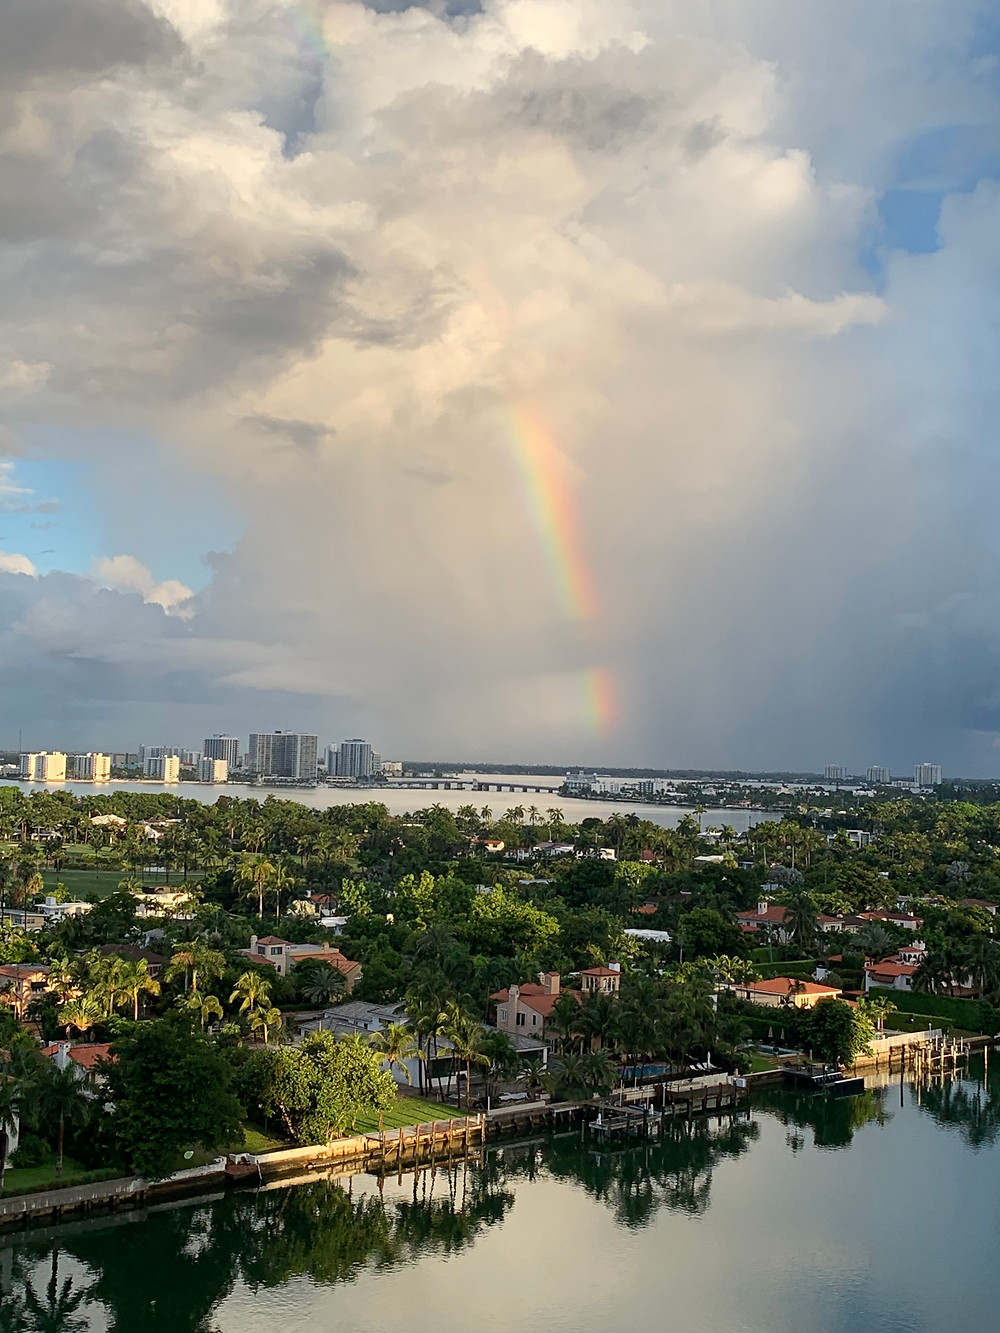 The S-Team is the silver lining in Miami real estate market, using creativity and expertise to stand out from the clutter.